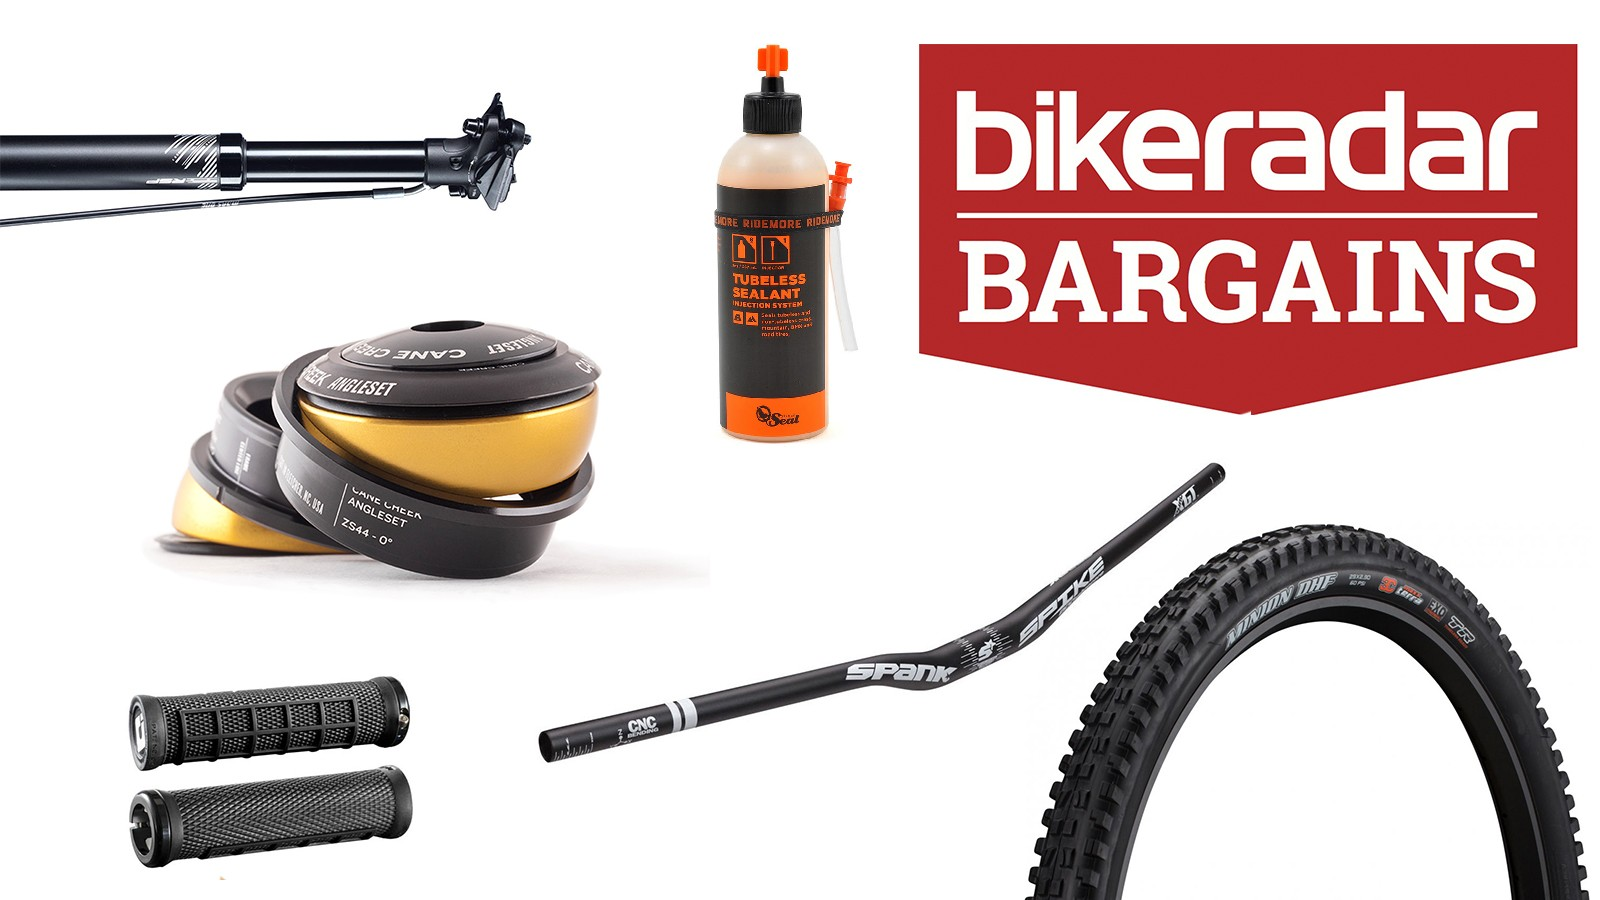 Pick up a bargain and upgrade your mountain bike